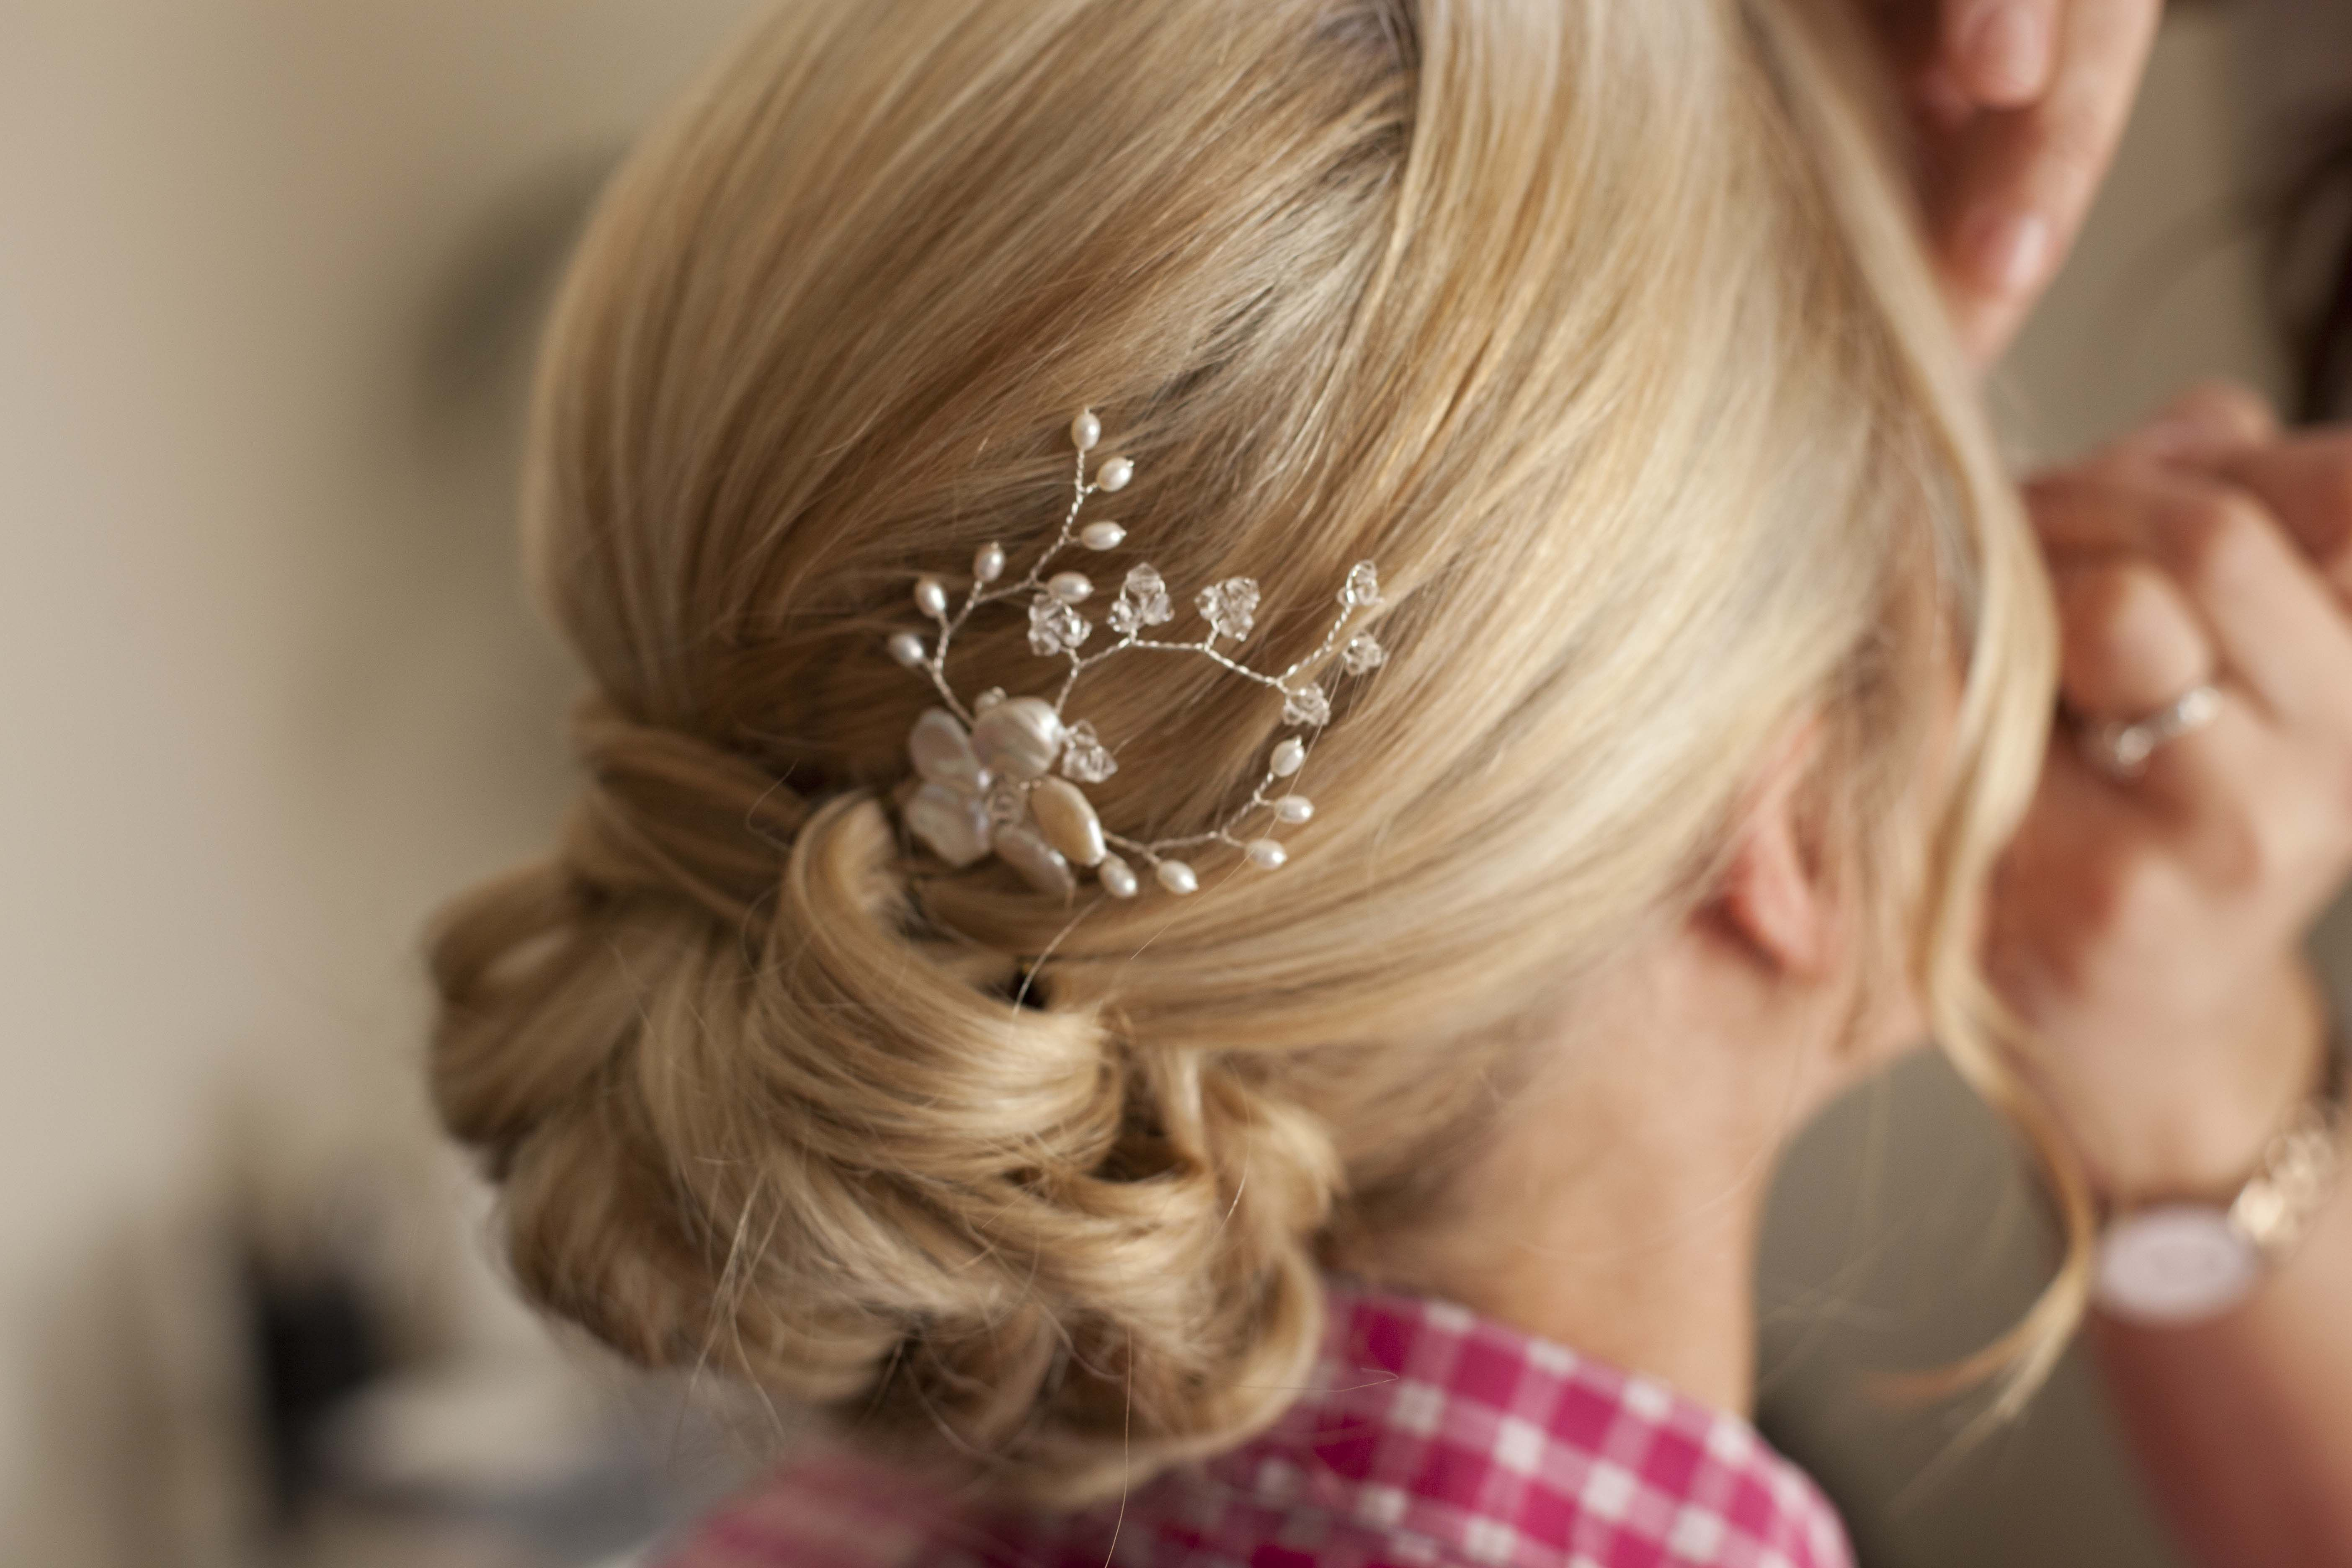 Jennifer wearing a Hermione Harbutt May Blossom Hair Pin | Rebecca Northway Photography | Blonde Hair Inspiration  http://www.hermioneharbutt.com/wedding/combs/buy.php?Product=316&Title=May+Blossom+Hairpins